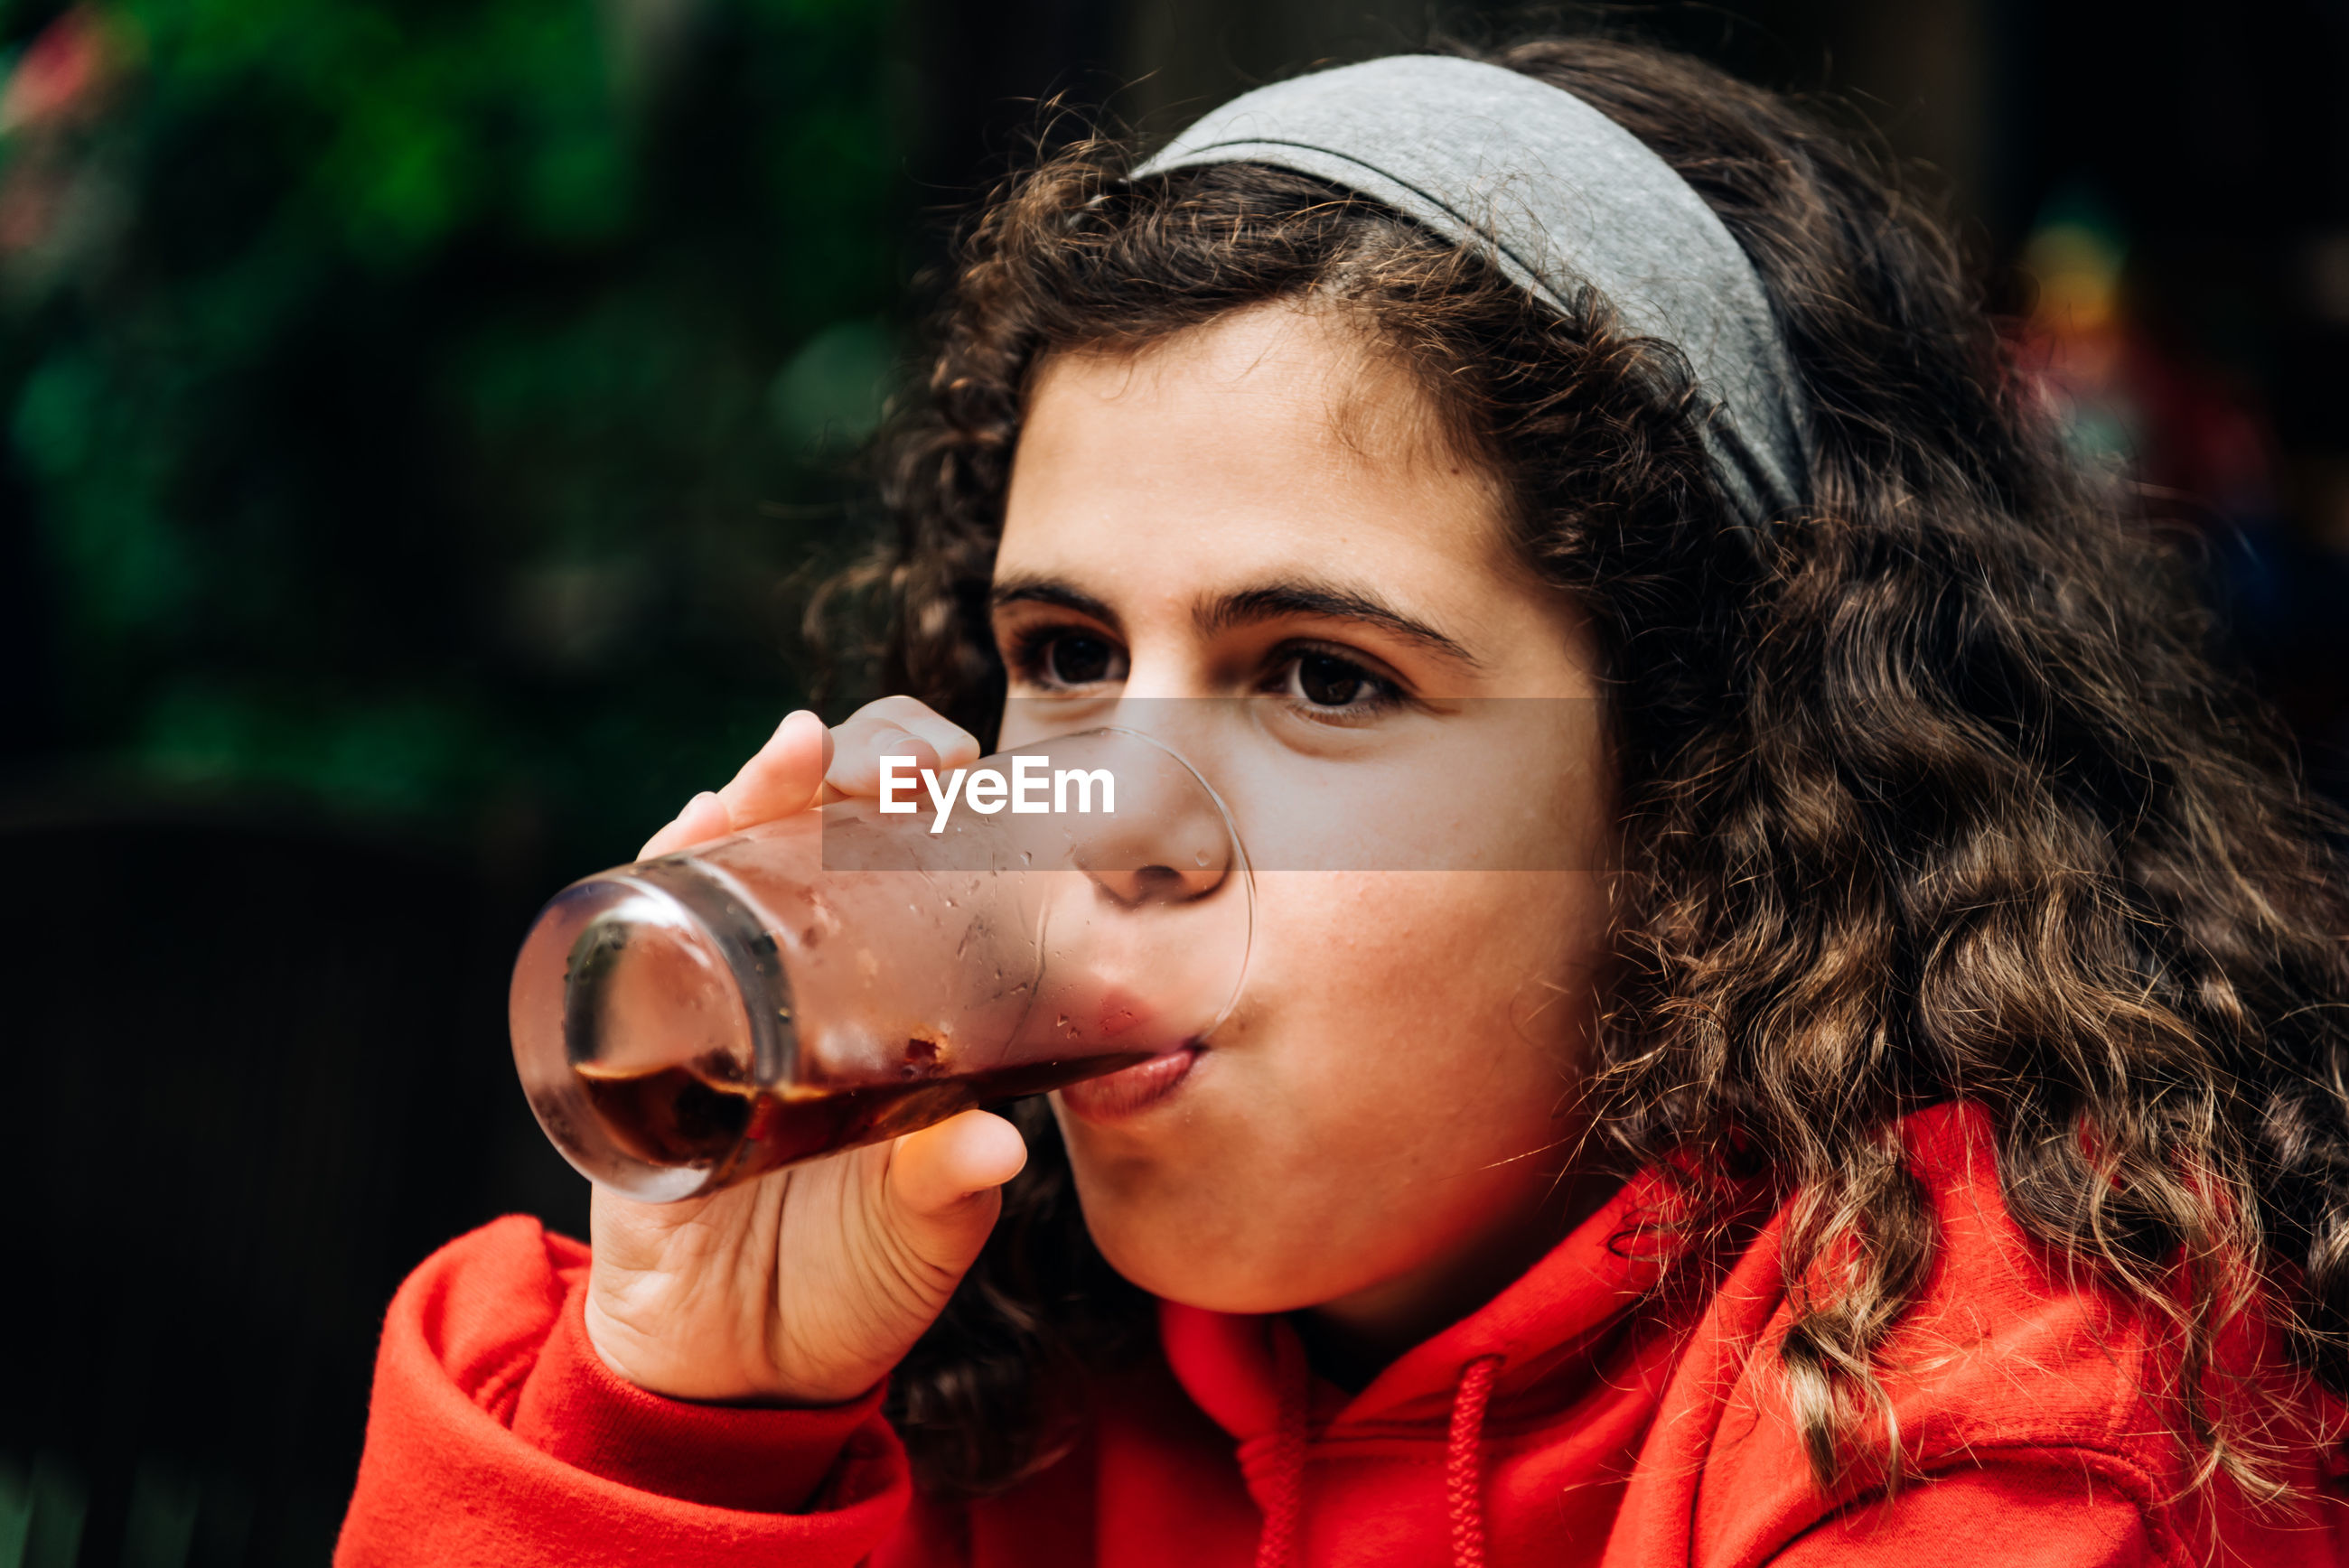 Close-up portrait of girl drinking